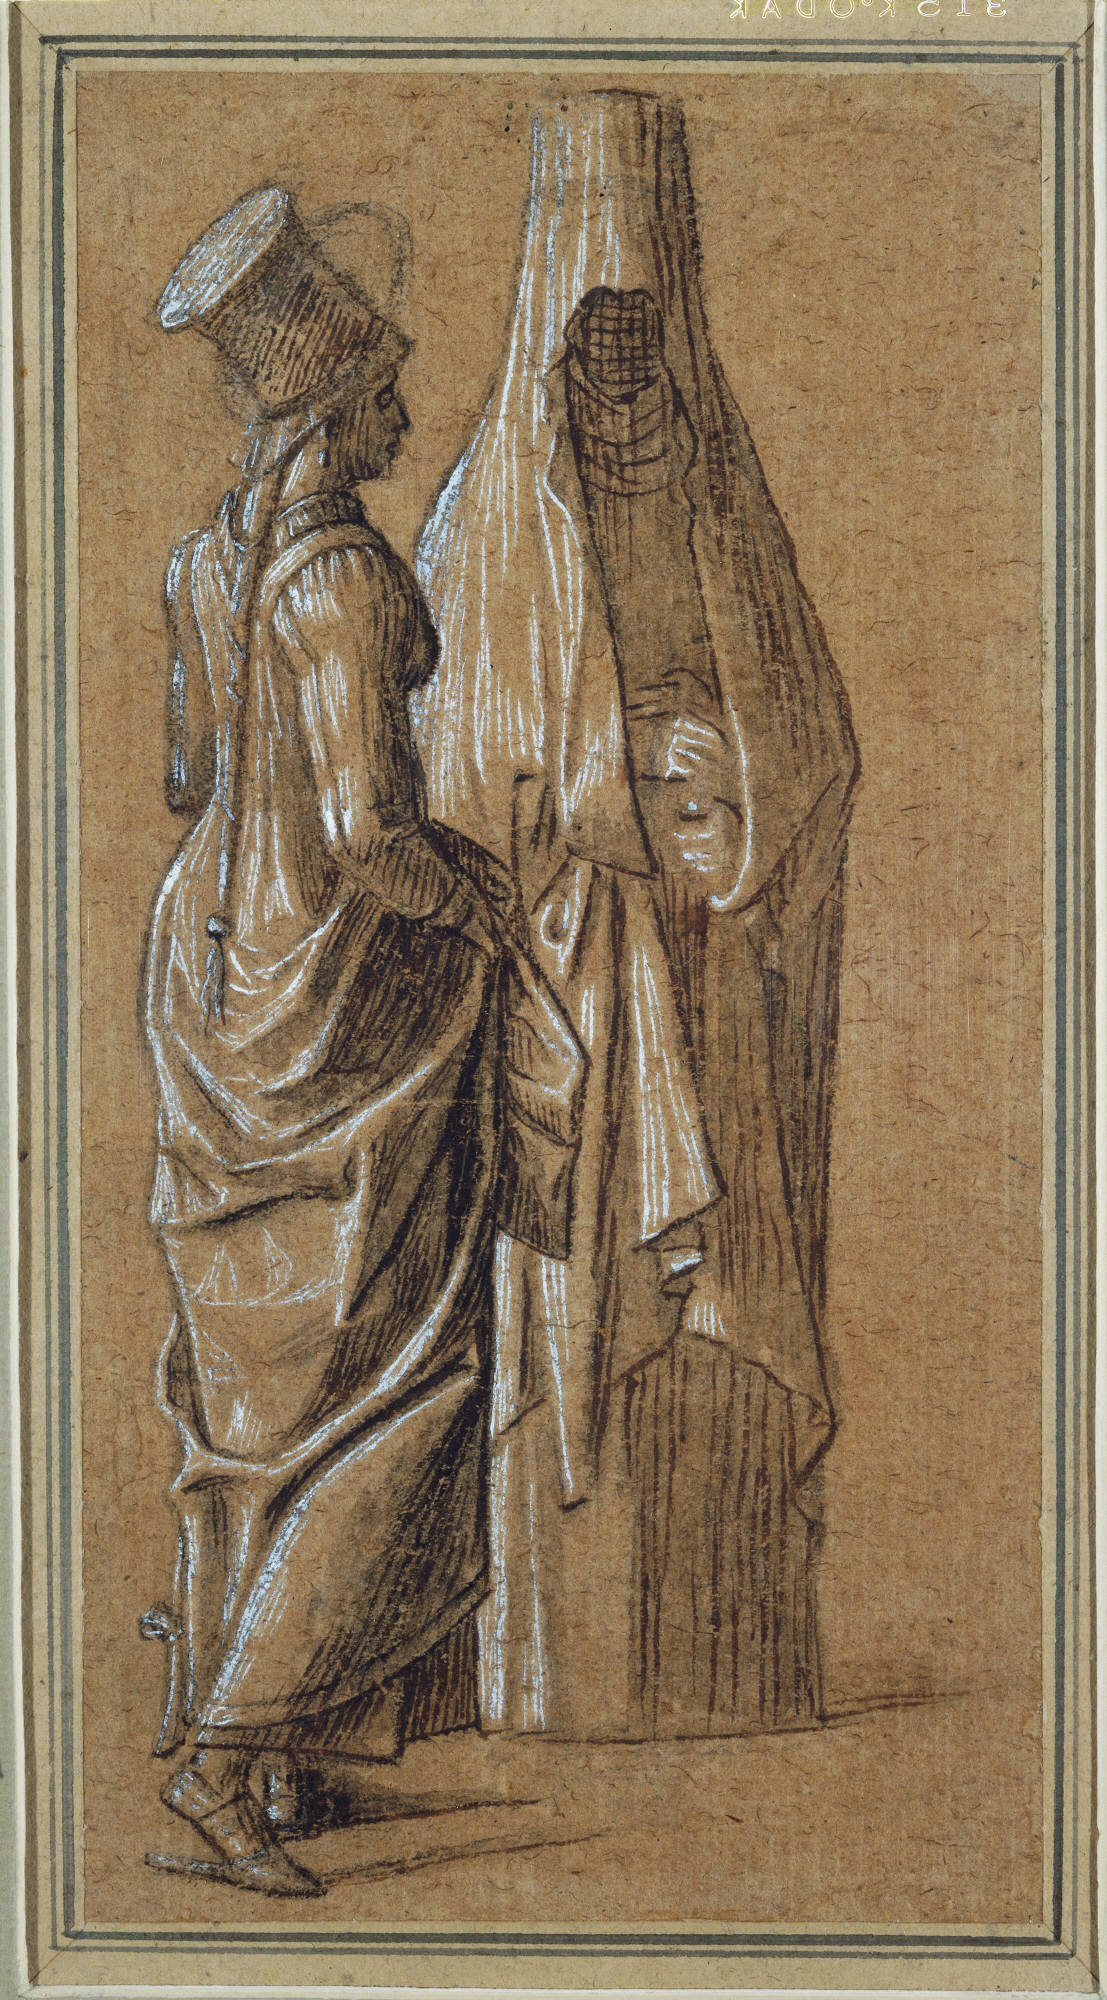 Vittore Carpaccio (Italian, ca. 1460/66– 1525/26), Two Standing Women, One in Mamluk Dress, 1501–8. Brush and brown ink with brush and gray-brown wash, heightened with white gouache, over black chalk, on light brown laid paper, 23.2 x 12.1 cm. Gift of Frank Jewett Mather Jr. (x1944-274)